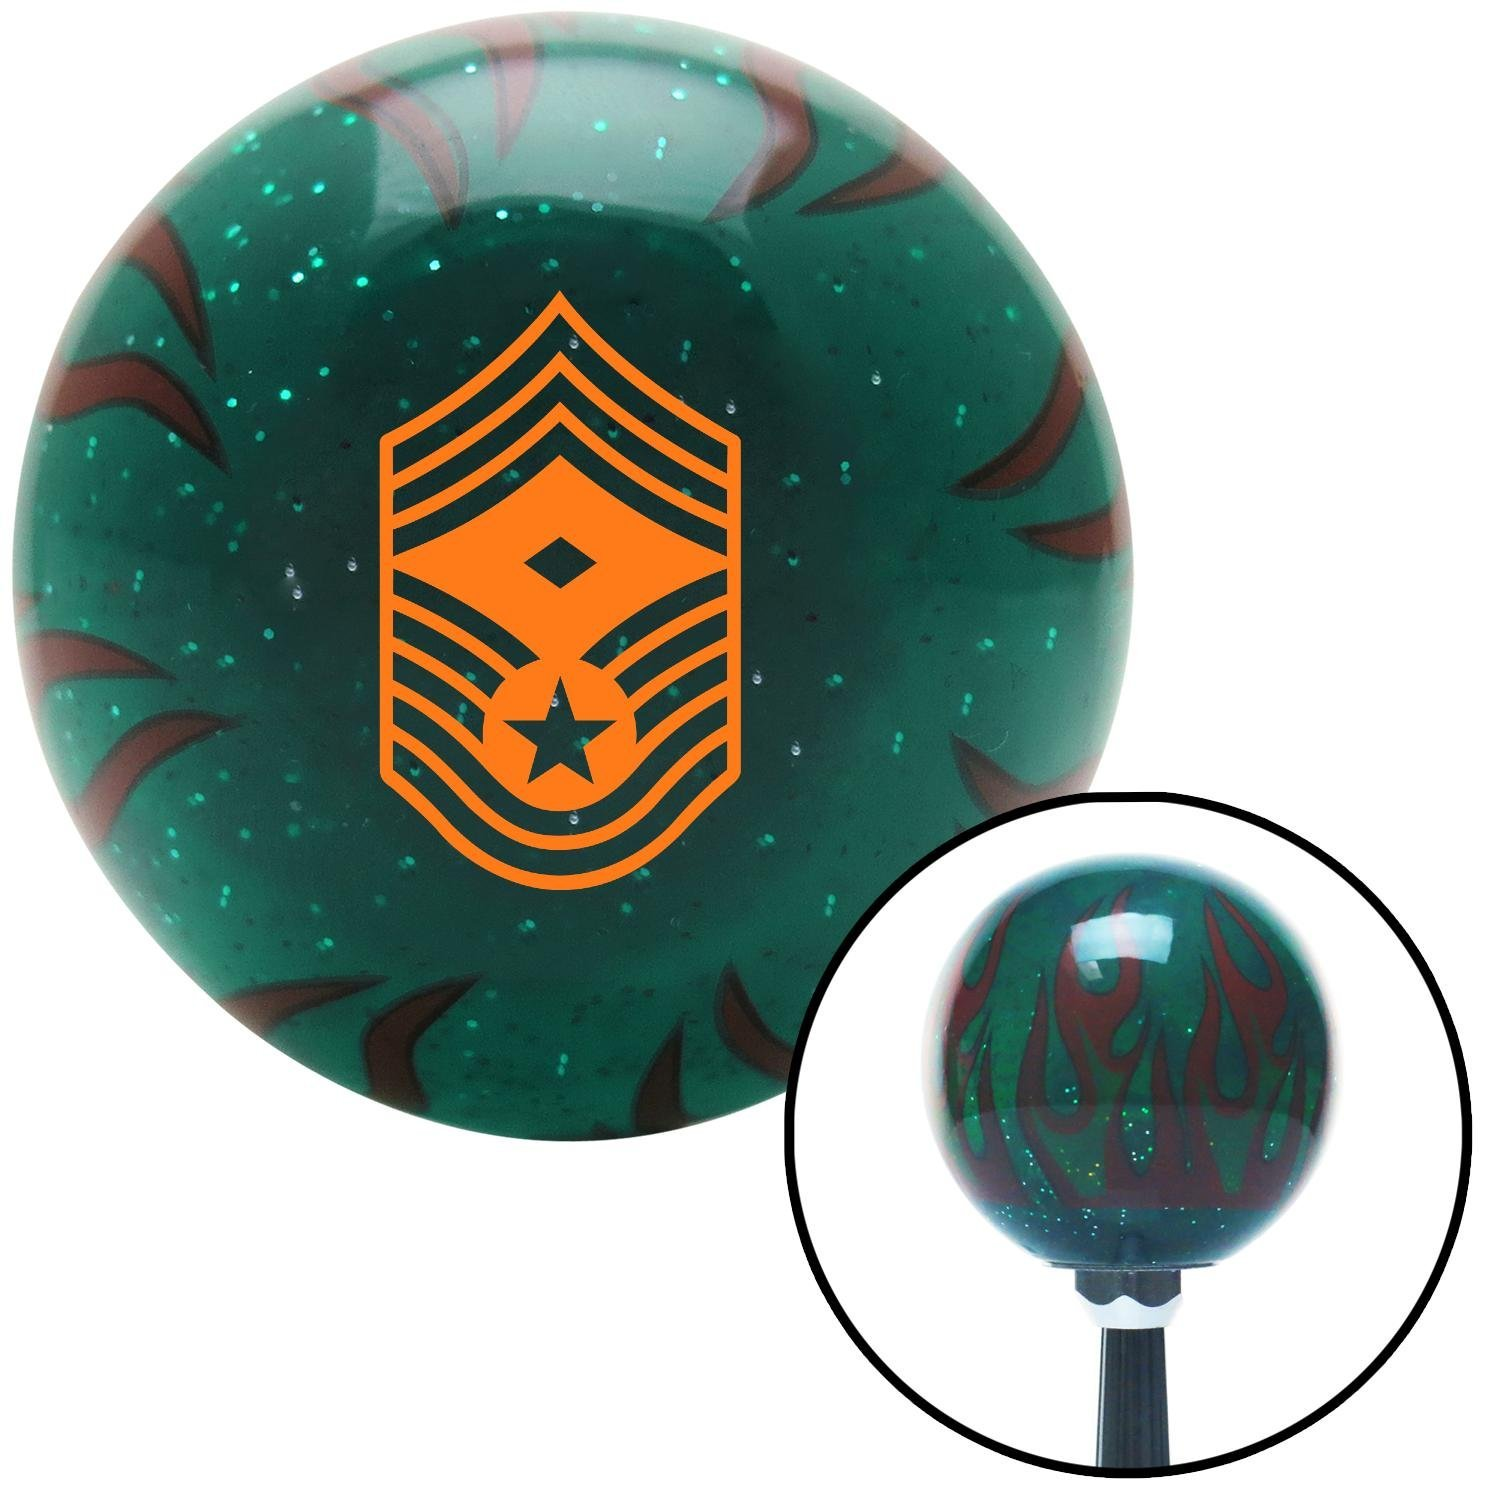 Orange Chief Master Sergeant First Sergeant American Shifter 262709 Green Flame Metal Flake Shift Knob with M16 x 1.5 Insert